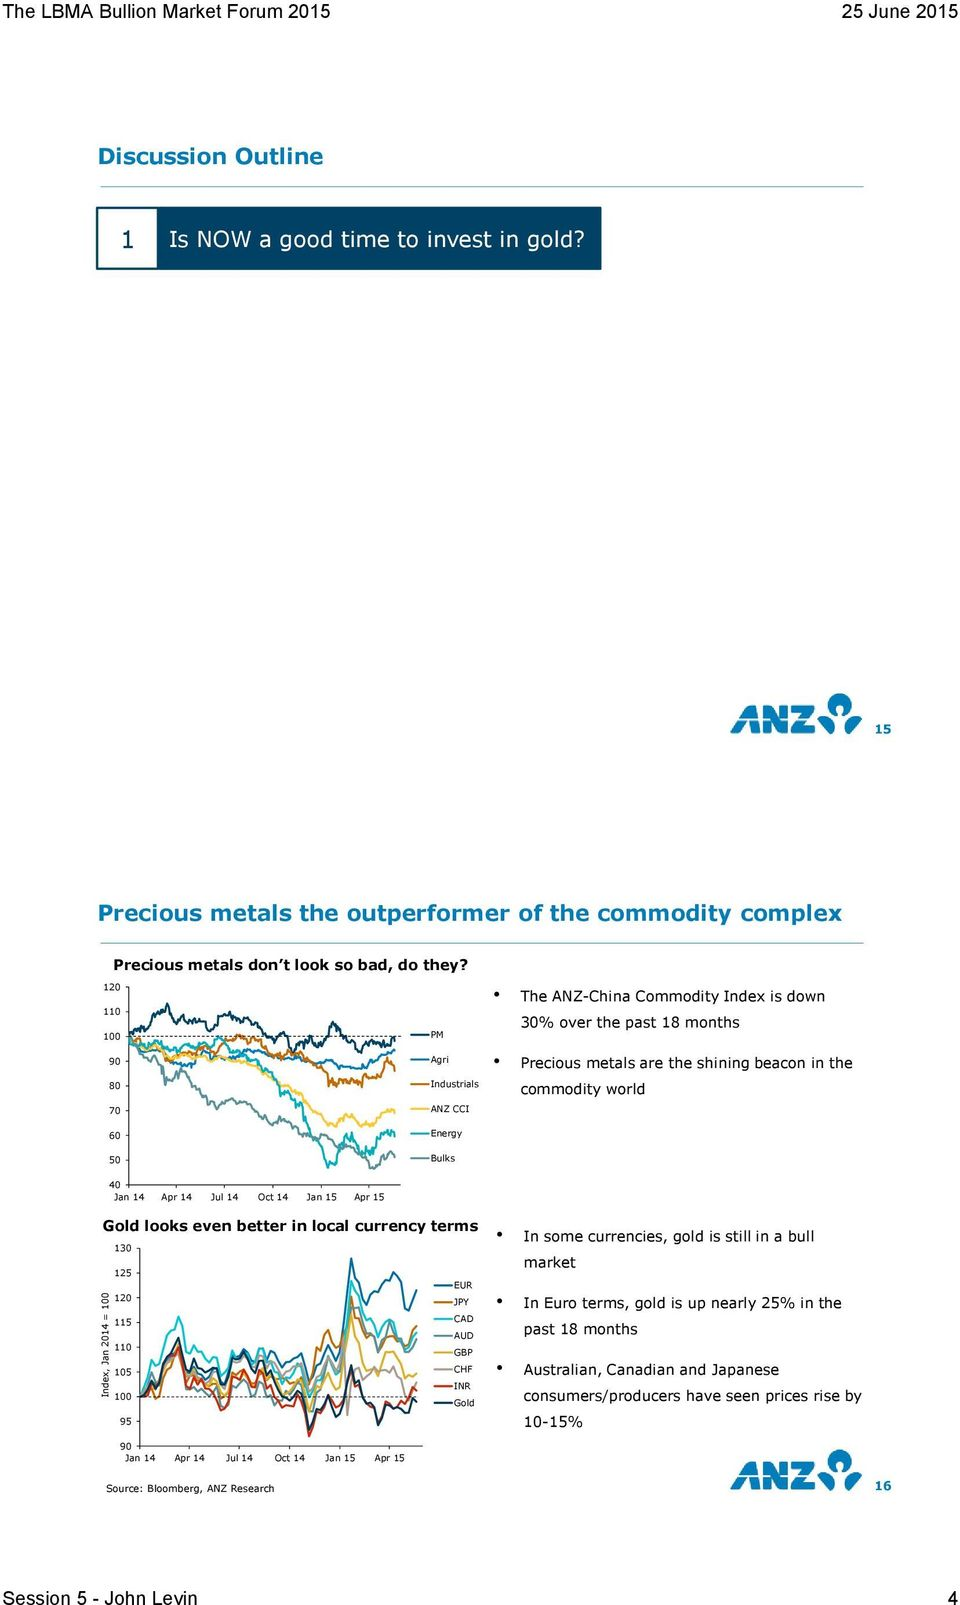 12 11 9 8 7 6 PM Agri Industrials ANZ CCI Energy The ANZ-China Commodity Index is down 3% over the past 18 months Precious metals are the shining beacon in the commodity world 5 Bulks 4 Jan 14 Apr 14